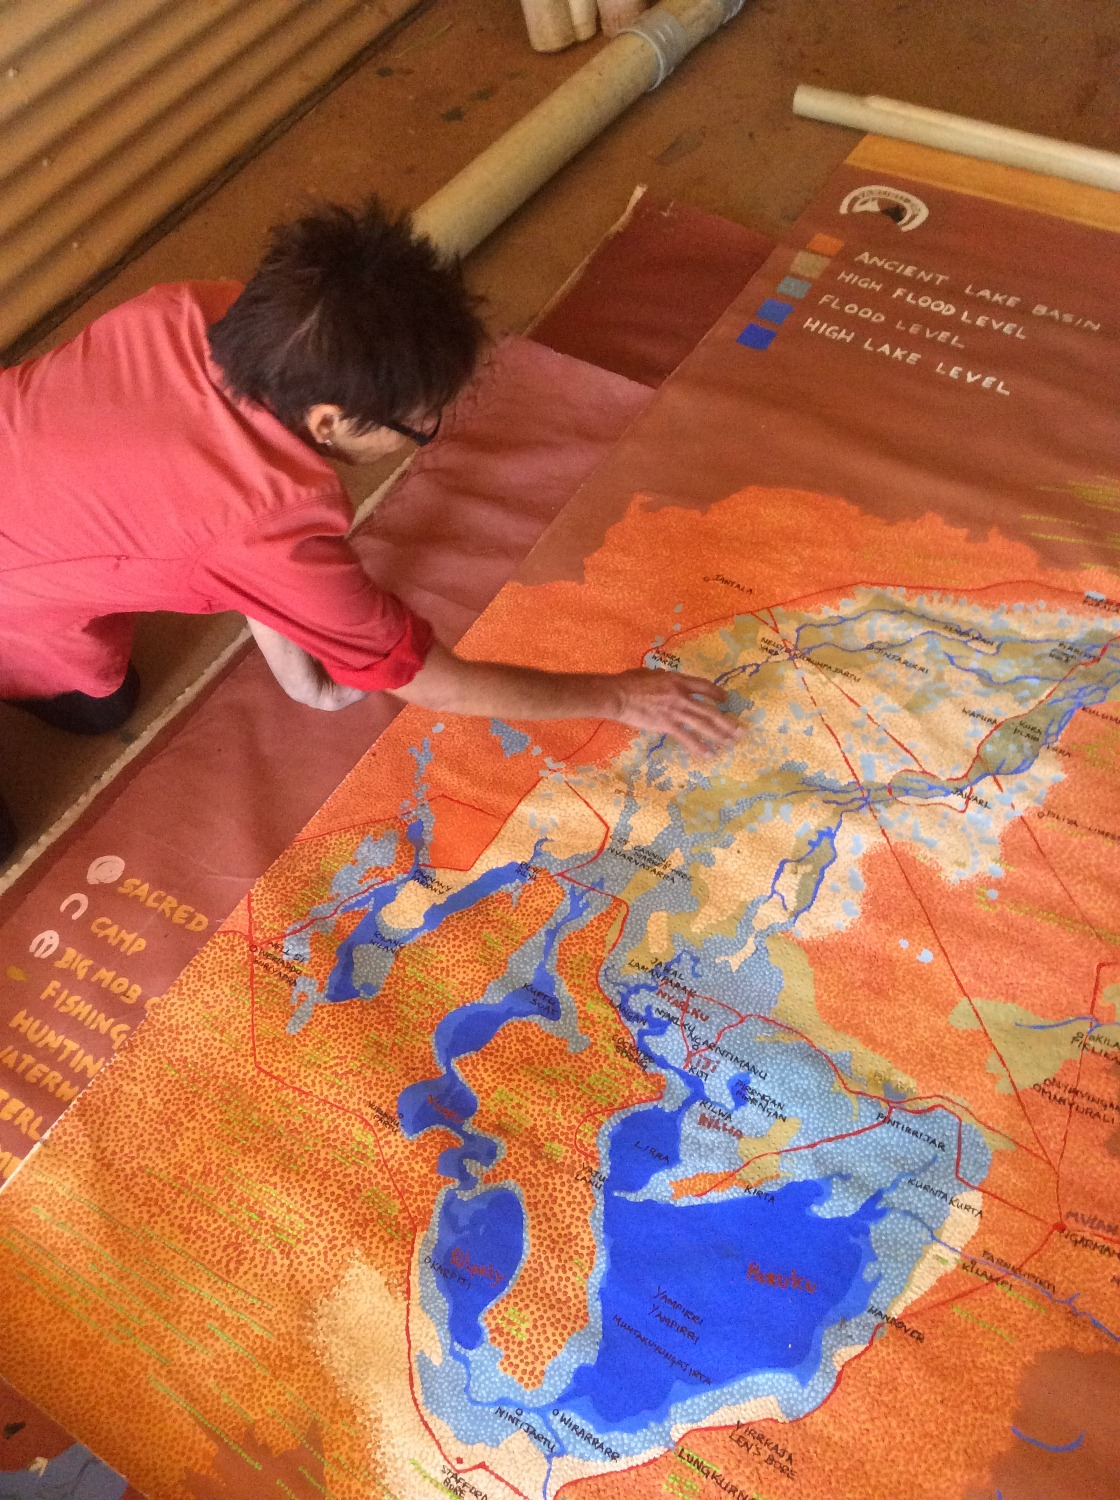 Kim Mahood unfurling the Lake Gregory water level, fire and cultural maps painted by Mulan artists. © AGWA 2016